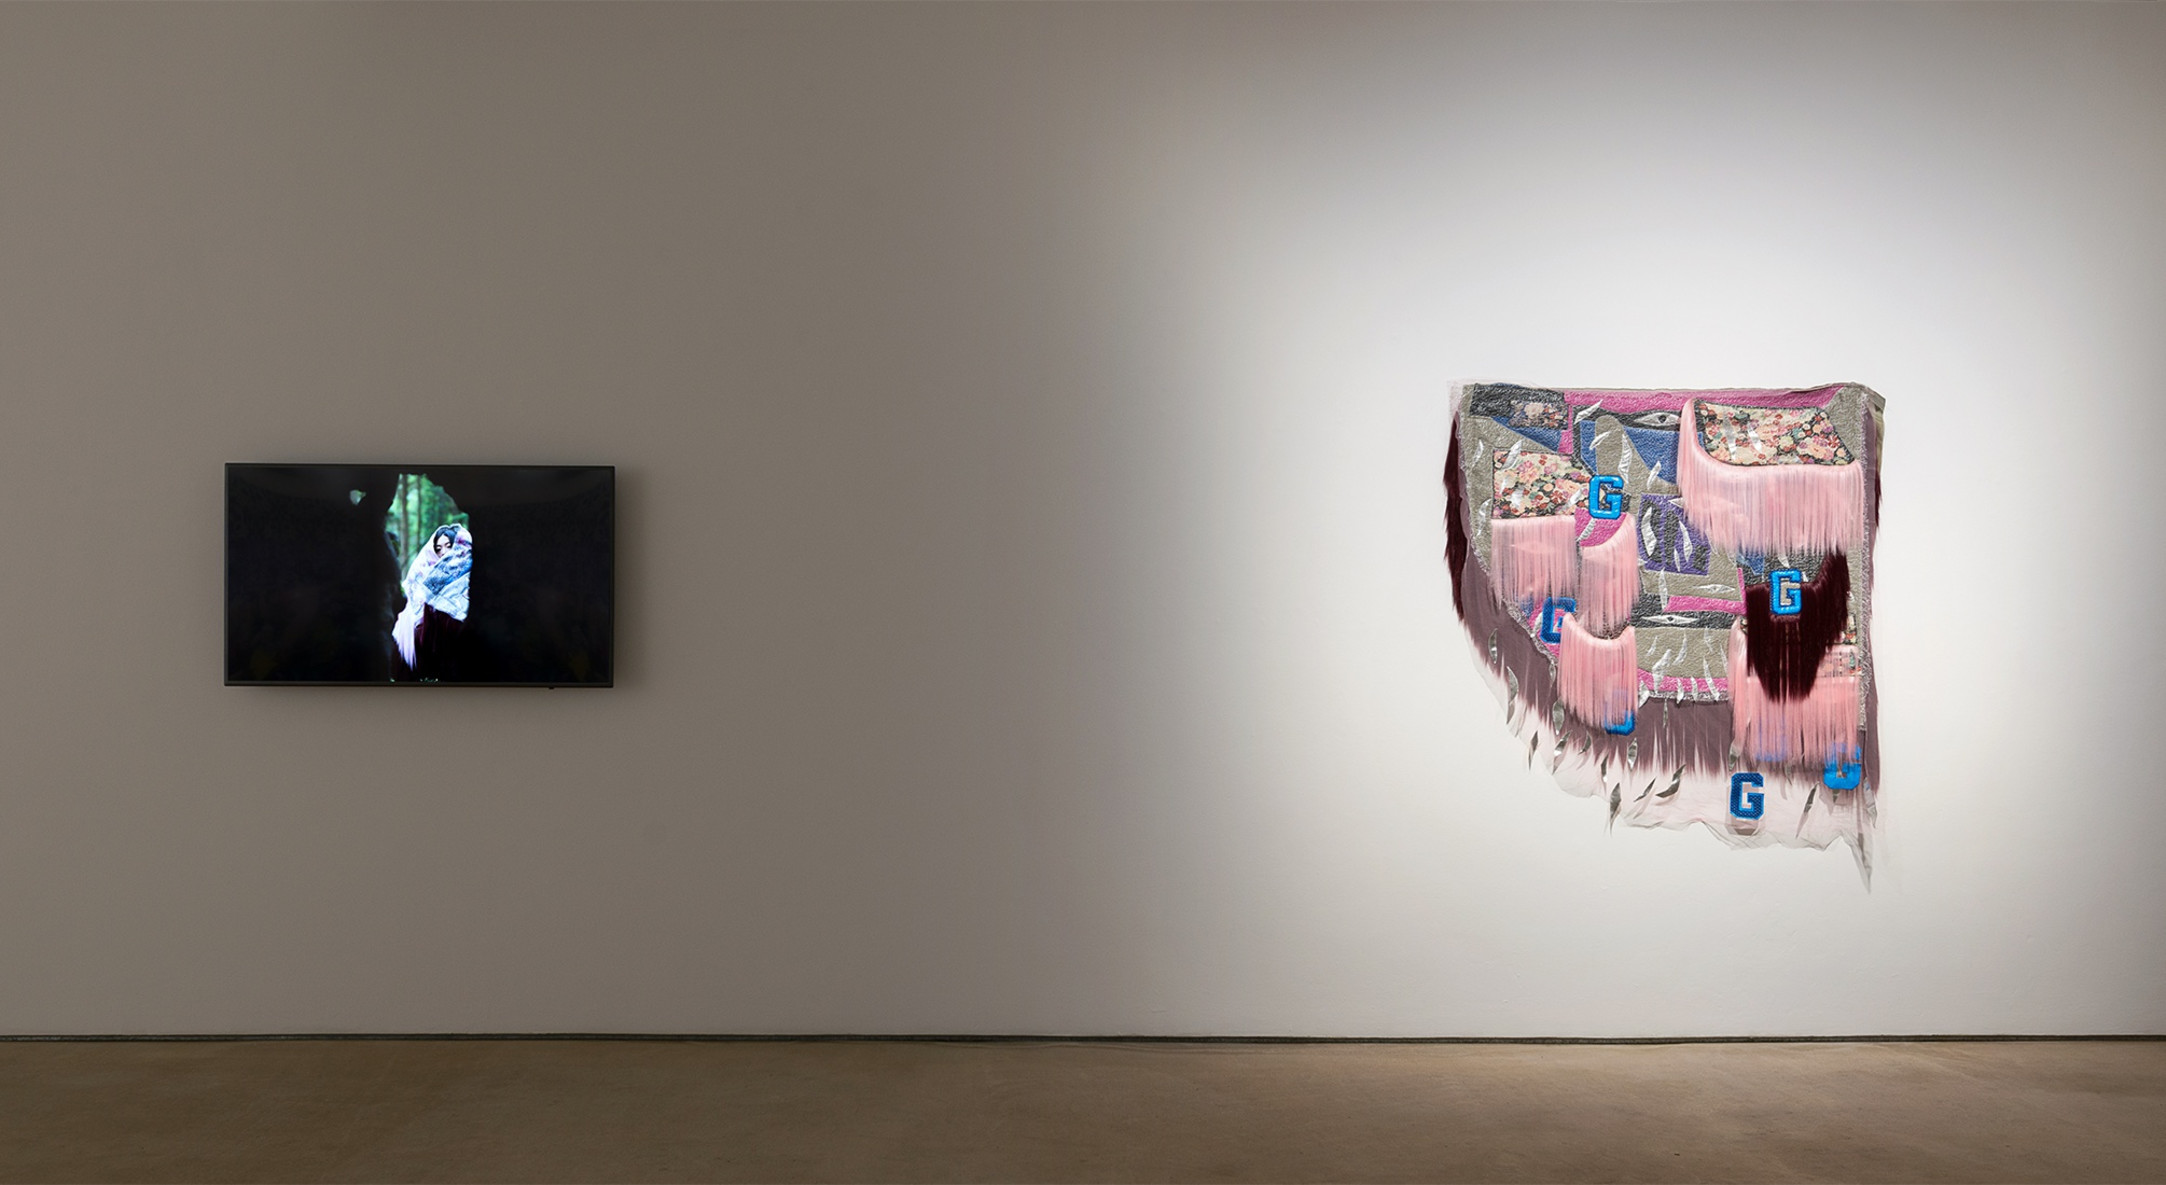 Installation view of Ebony G Patterson, Thomas J Price, and Zadie Xa at Hales London